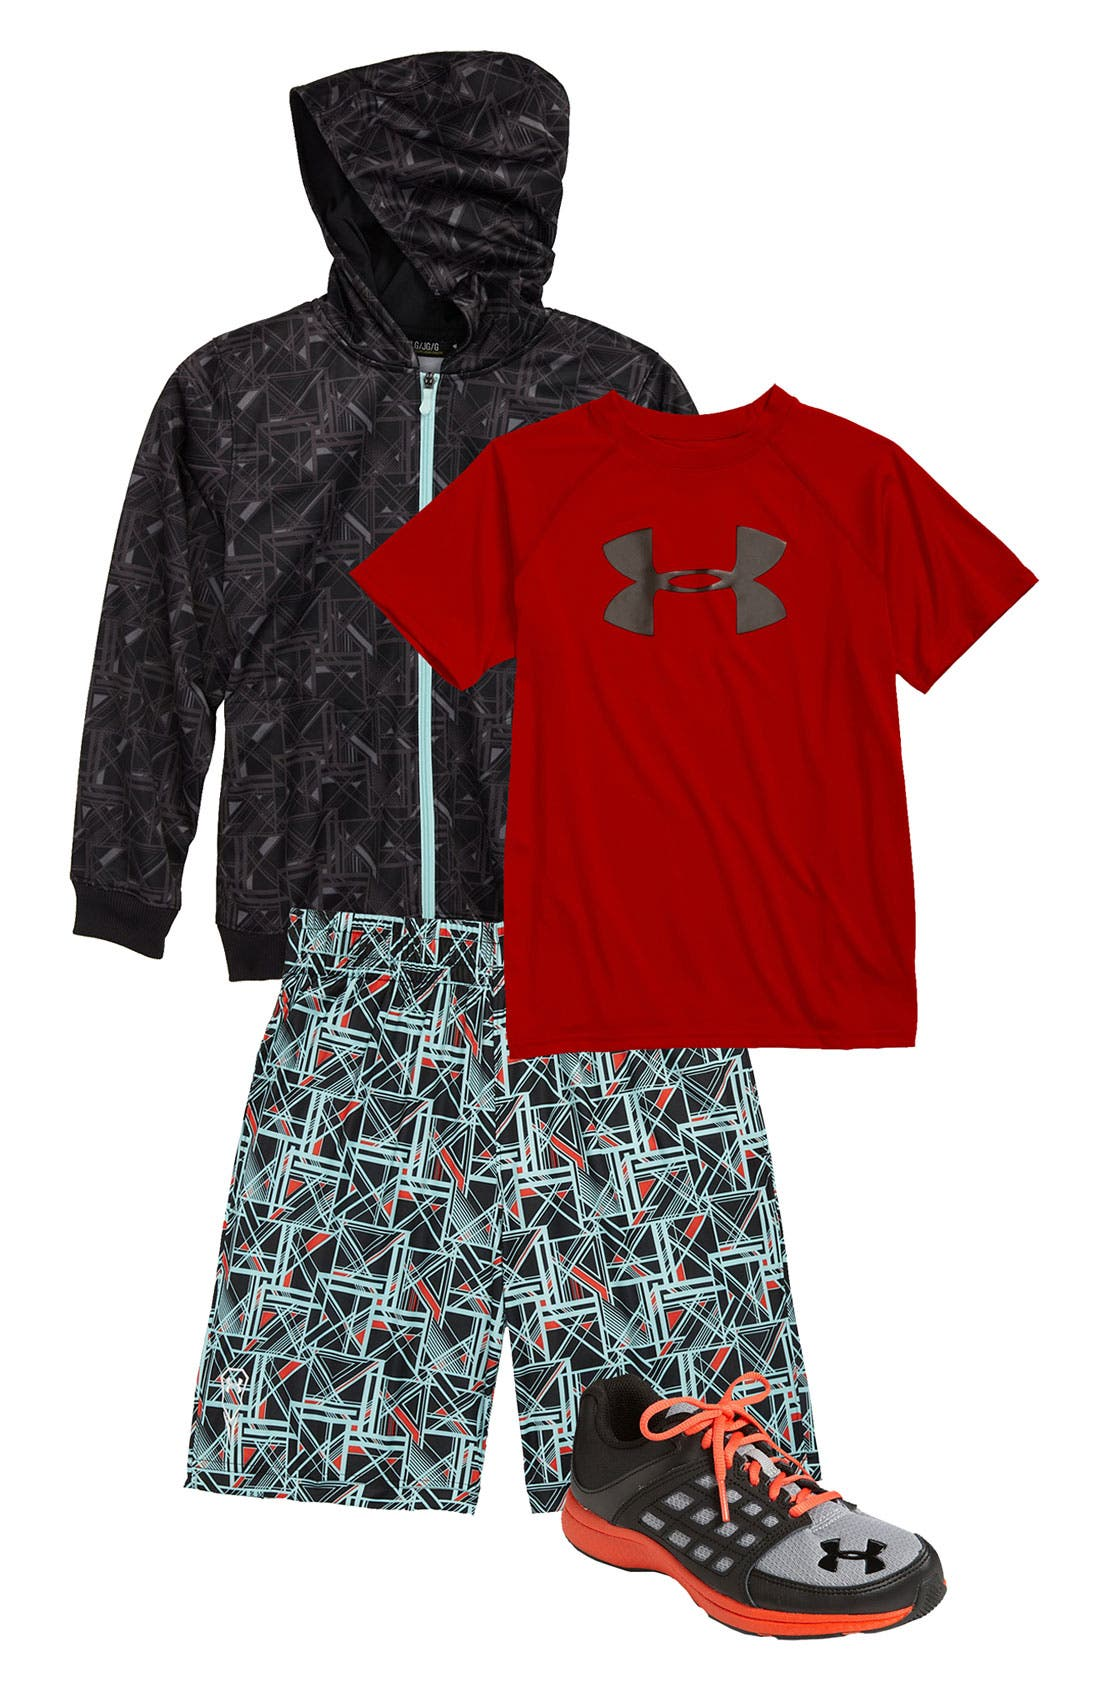 Main Image - Under Armour T-Shirt, Shorts & Hoodie (Big Boys)